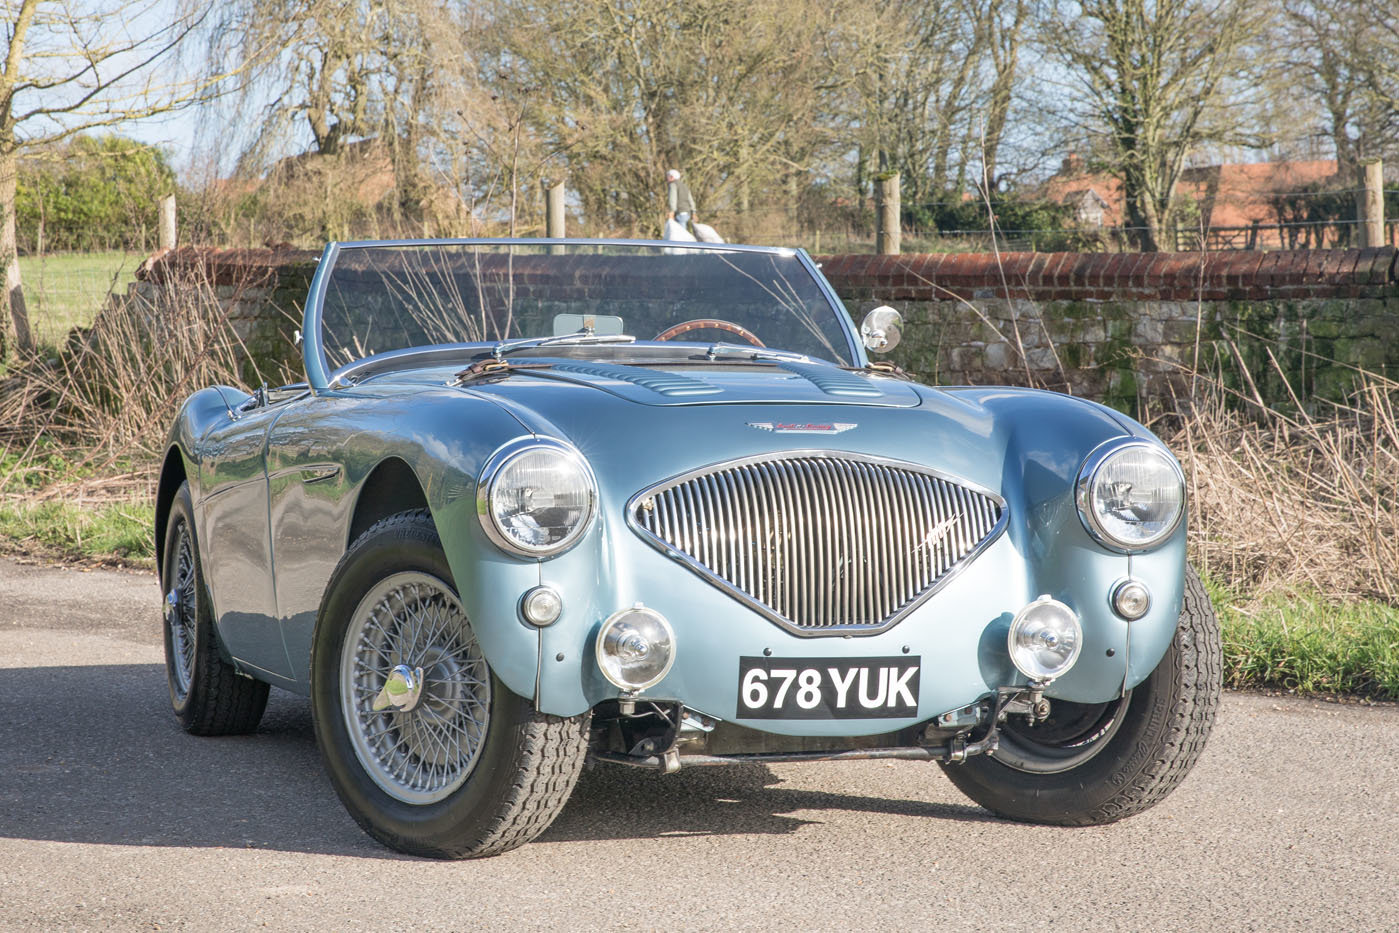 1955 Austin Healey 100/4 BN2 | Healey Blue, M Specification SOLD (picture 1 of 6)